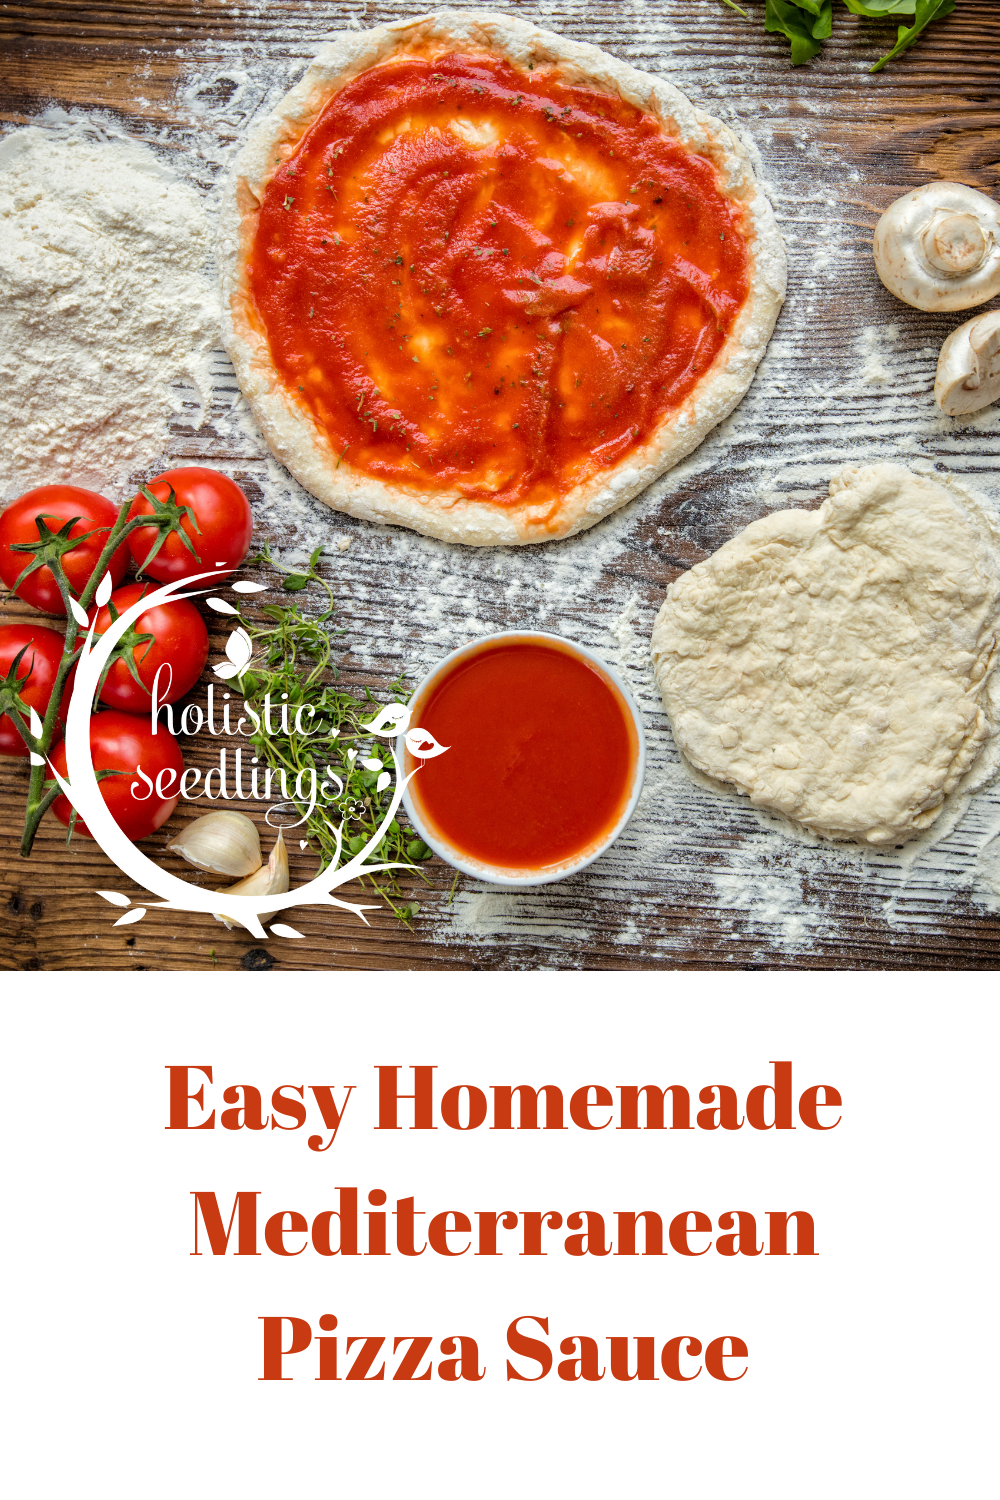 Homemade Mediterranean Pizza Sauce via @raindropswell